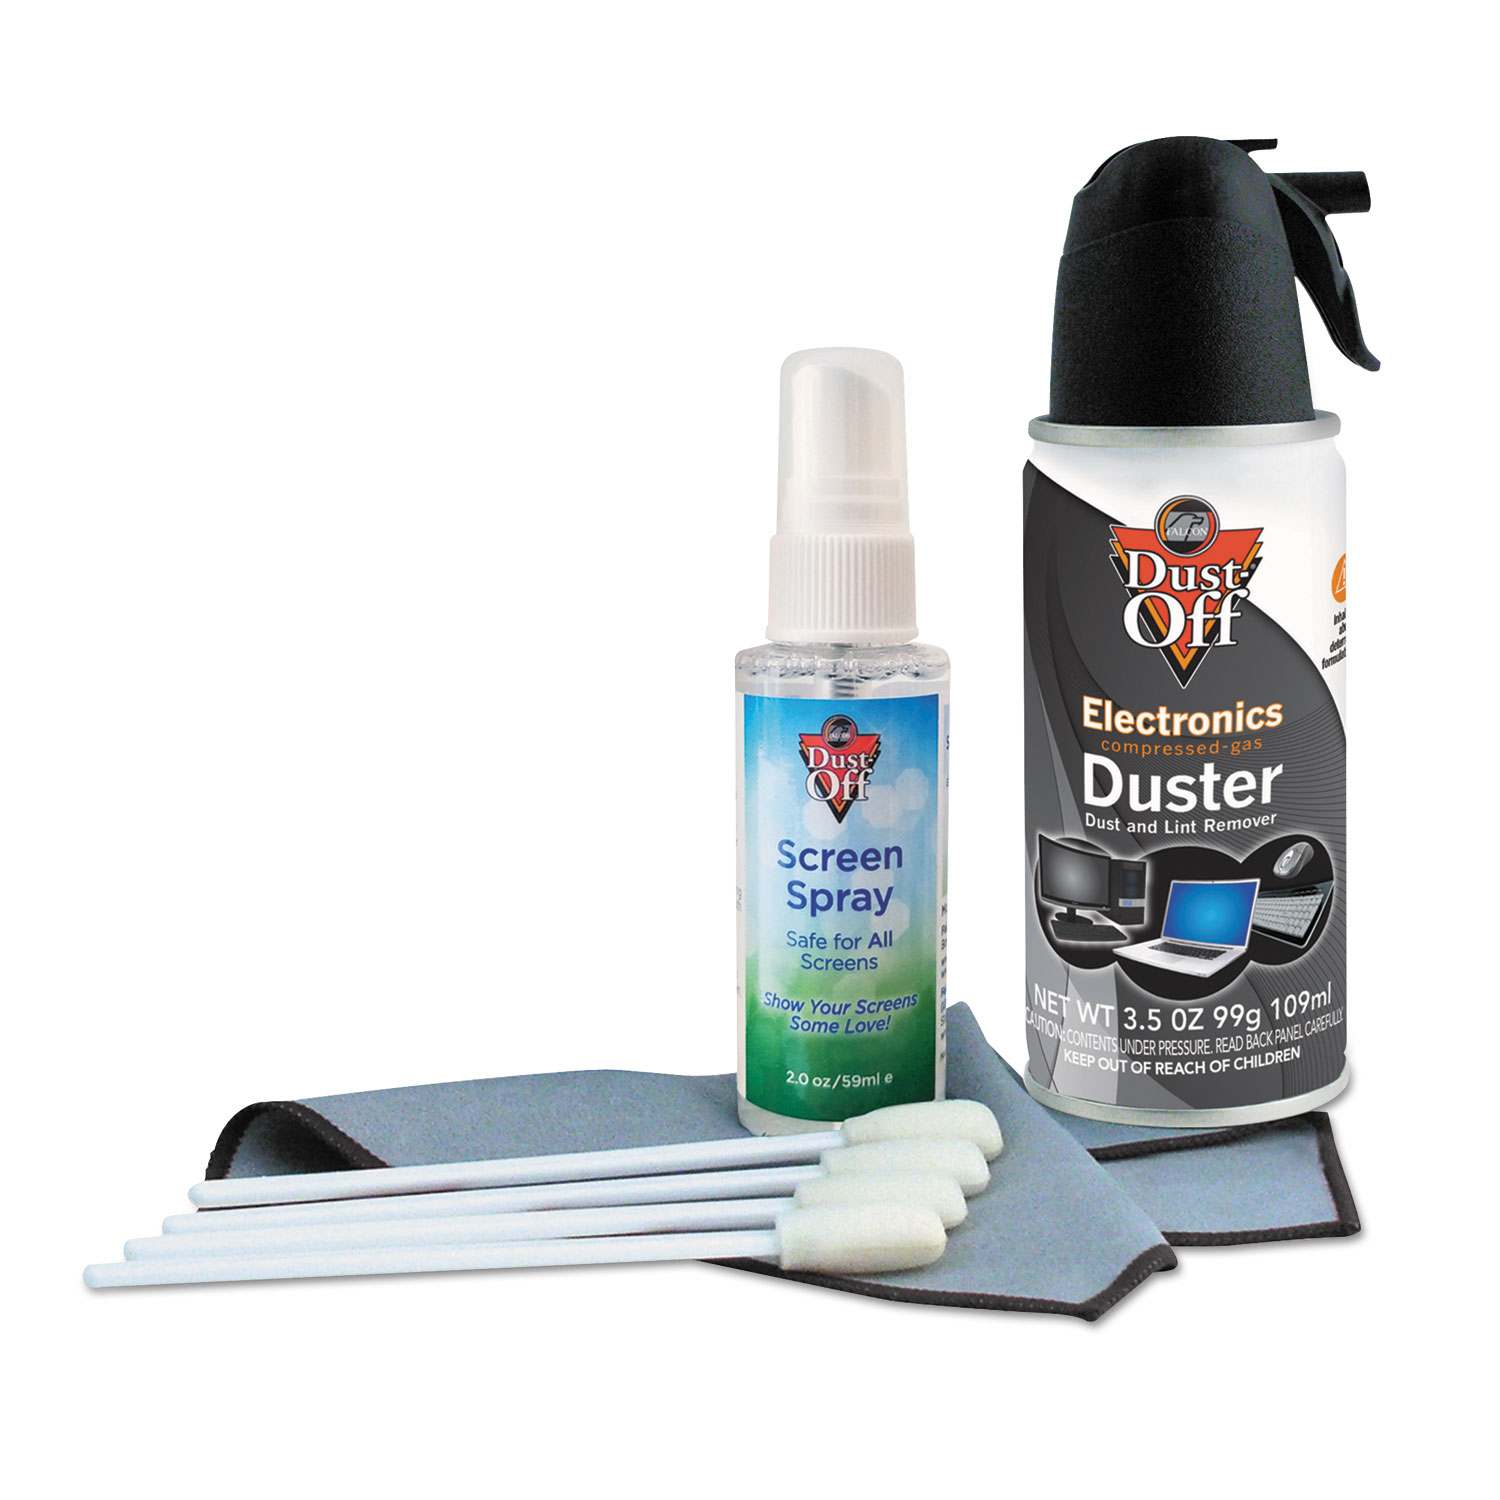 Premium Keyboard Cleaning Kit, 50 ML Bottle, 5 1/4″ X 7 1/2″ Cloth, 4 Swabs